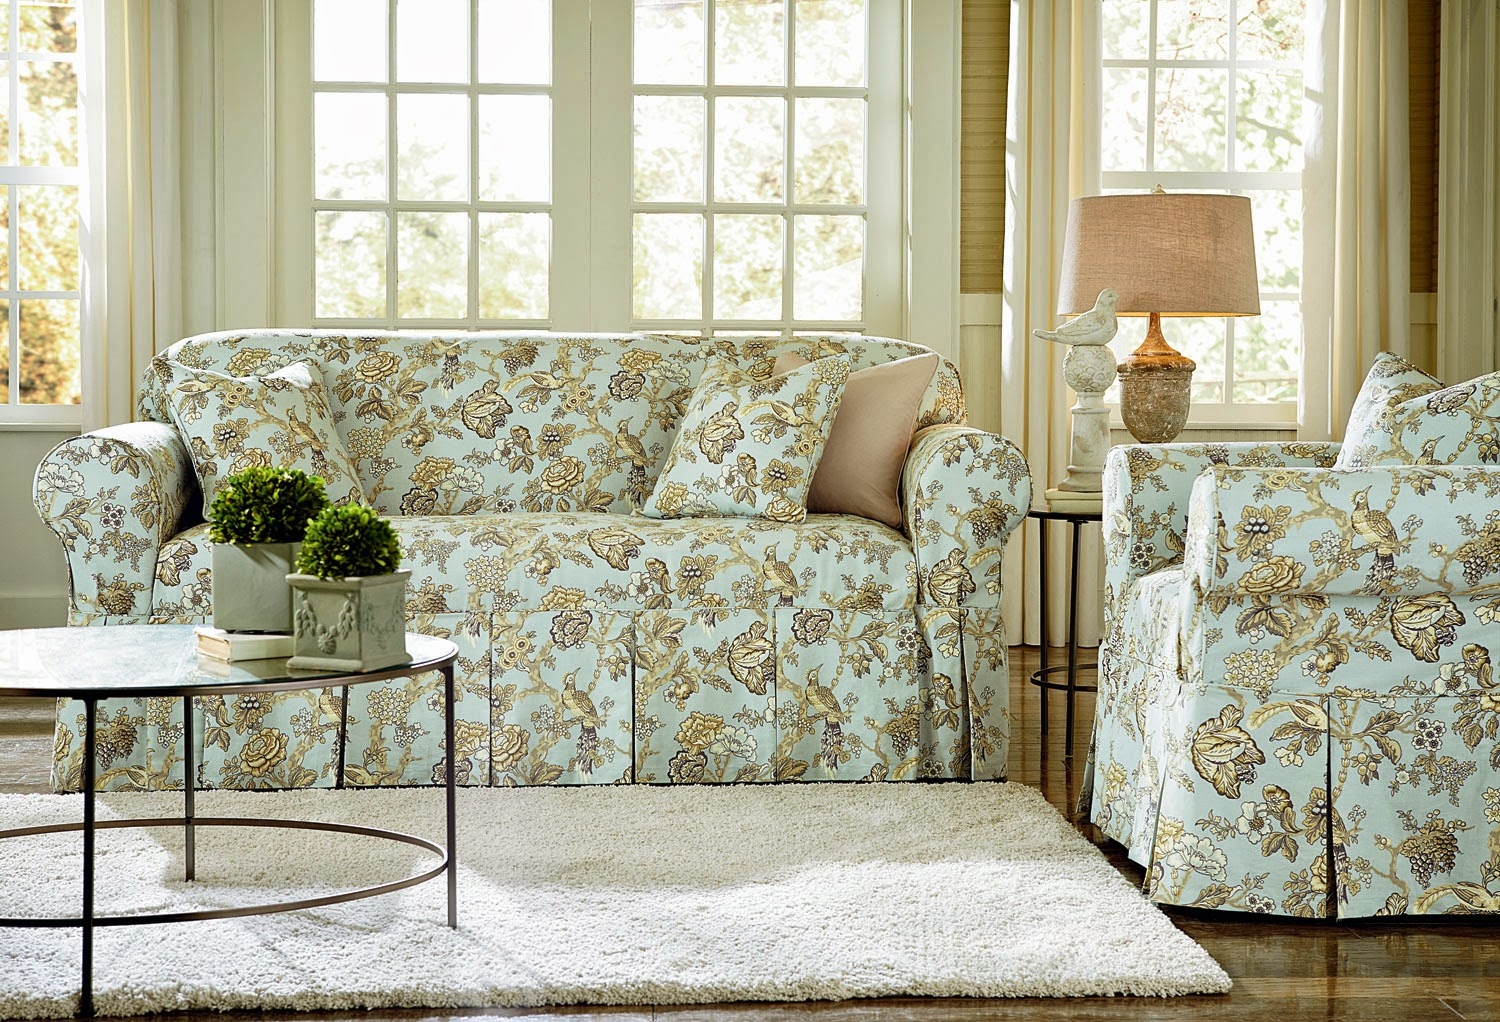 Top 15 Floral Sofas And Chairs Sofa Ideas